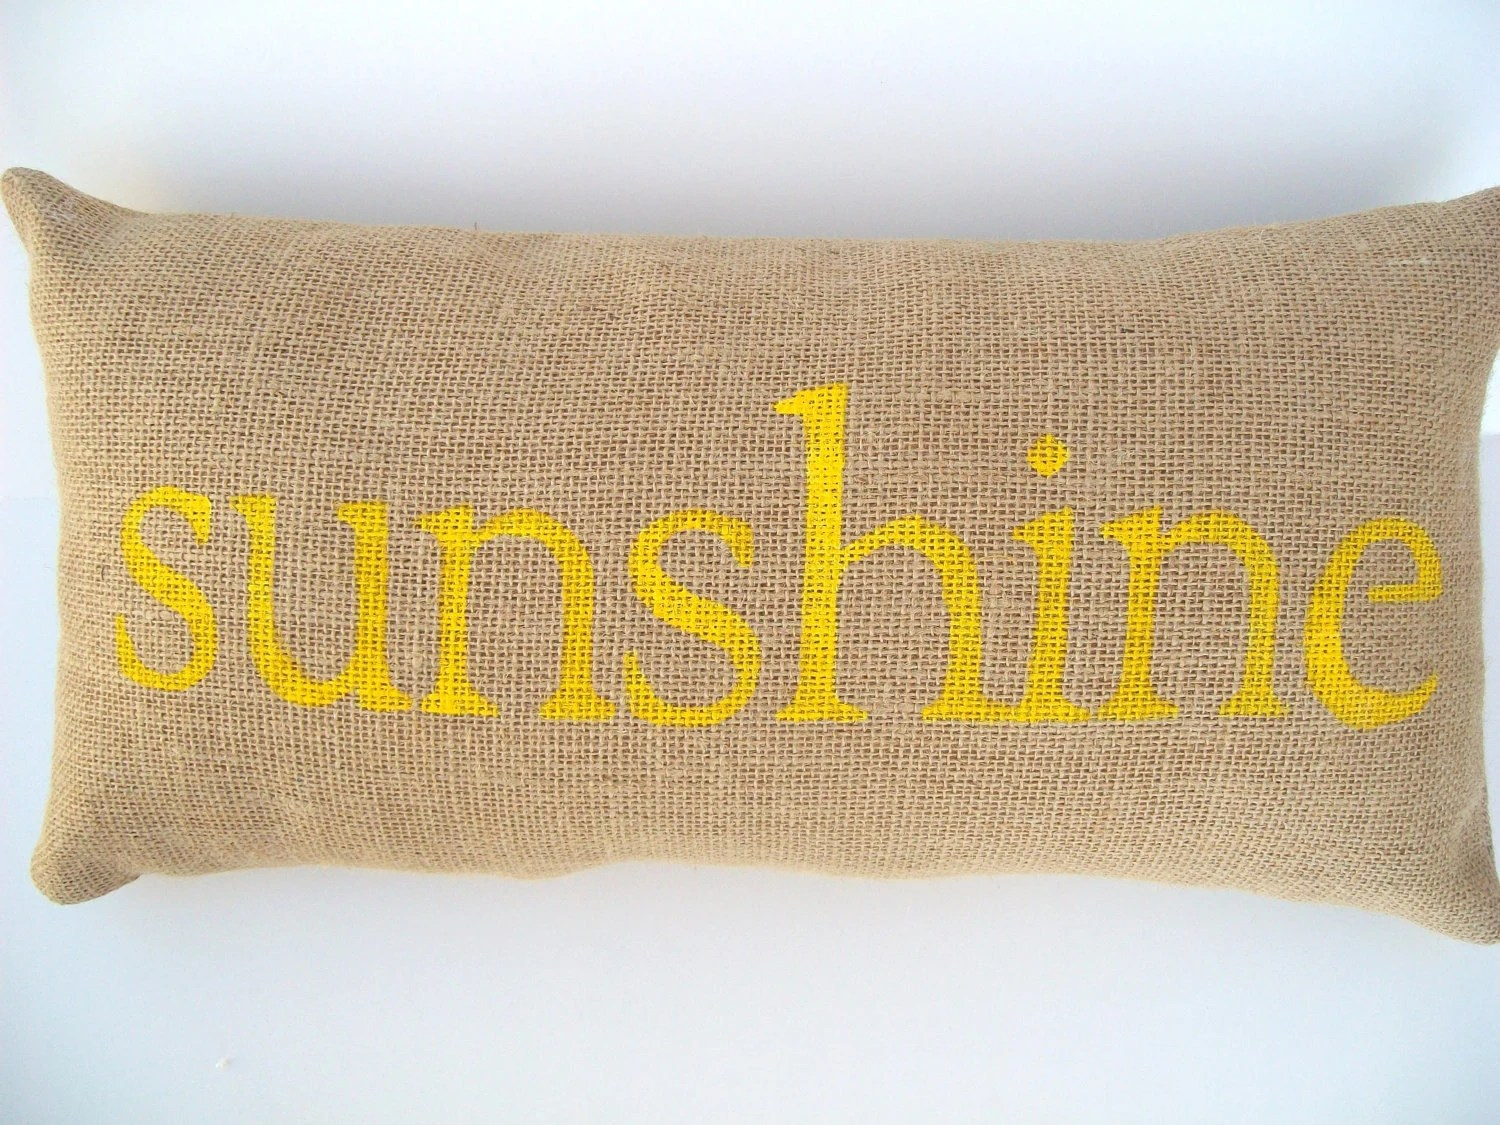 burlap pillow SUNSHINE word pillow, whimsical, summertime garden, yellow, nursery, home decor, birthday, graduation, teacher gift - whimsysweetwhimsy